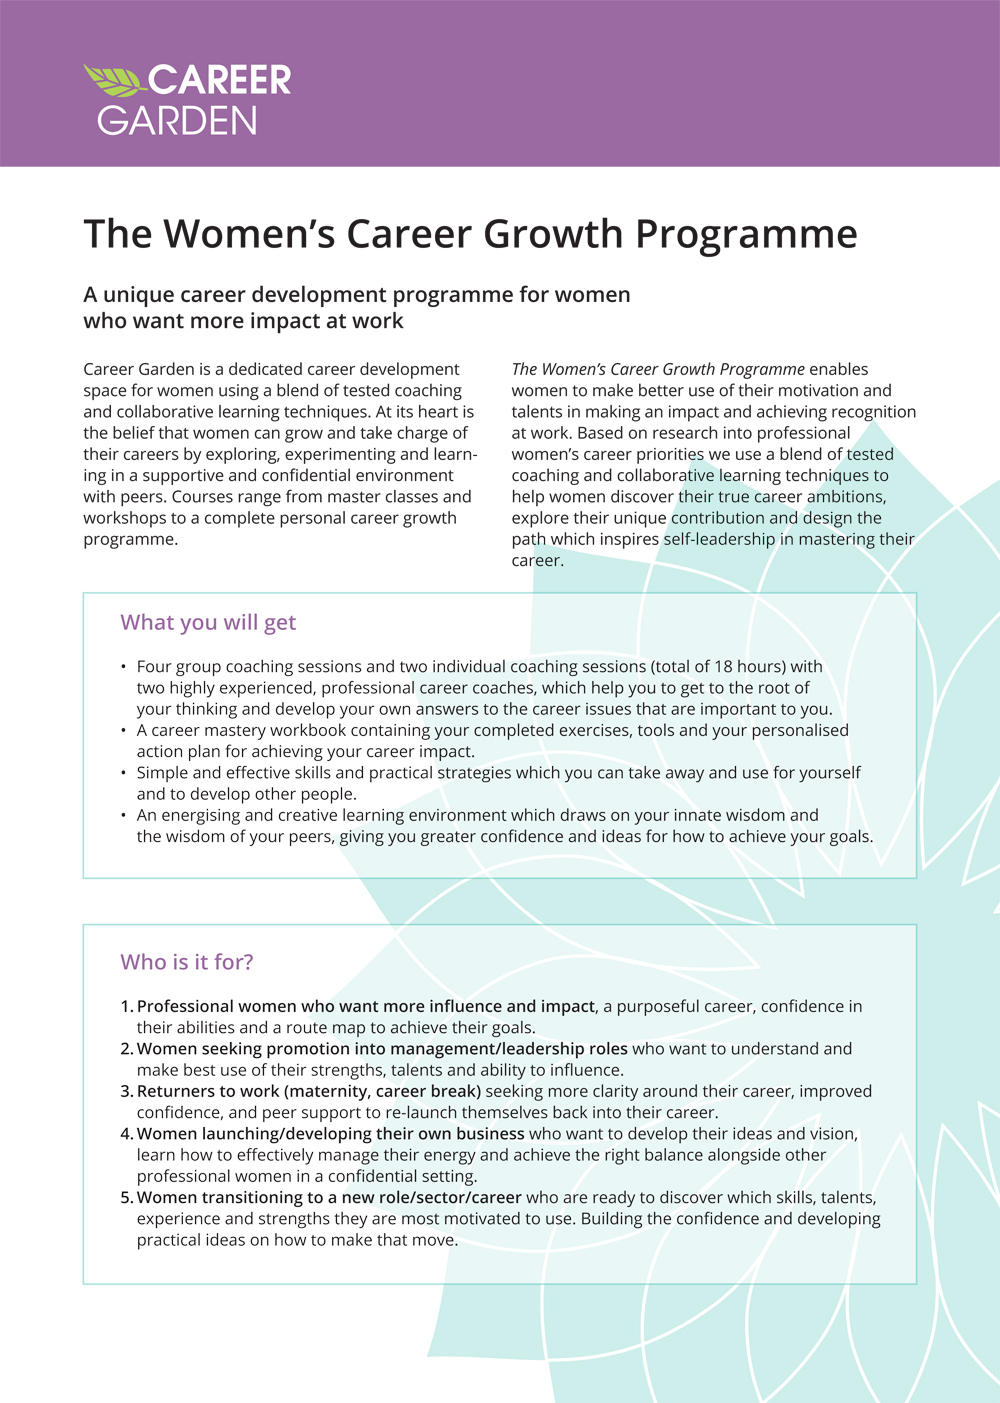 Careergarden_flyer.jpg